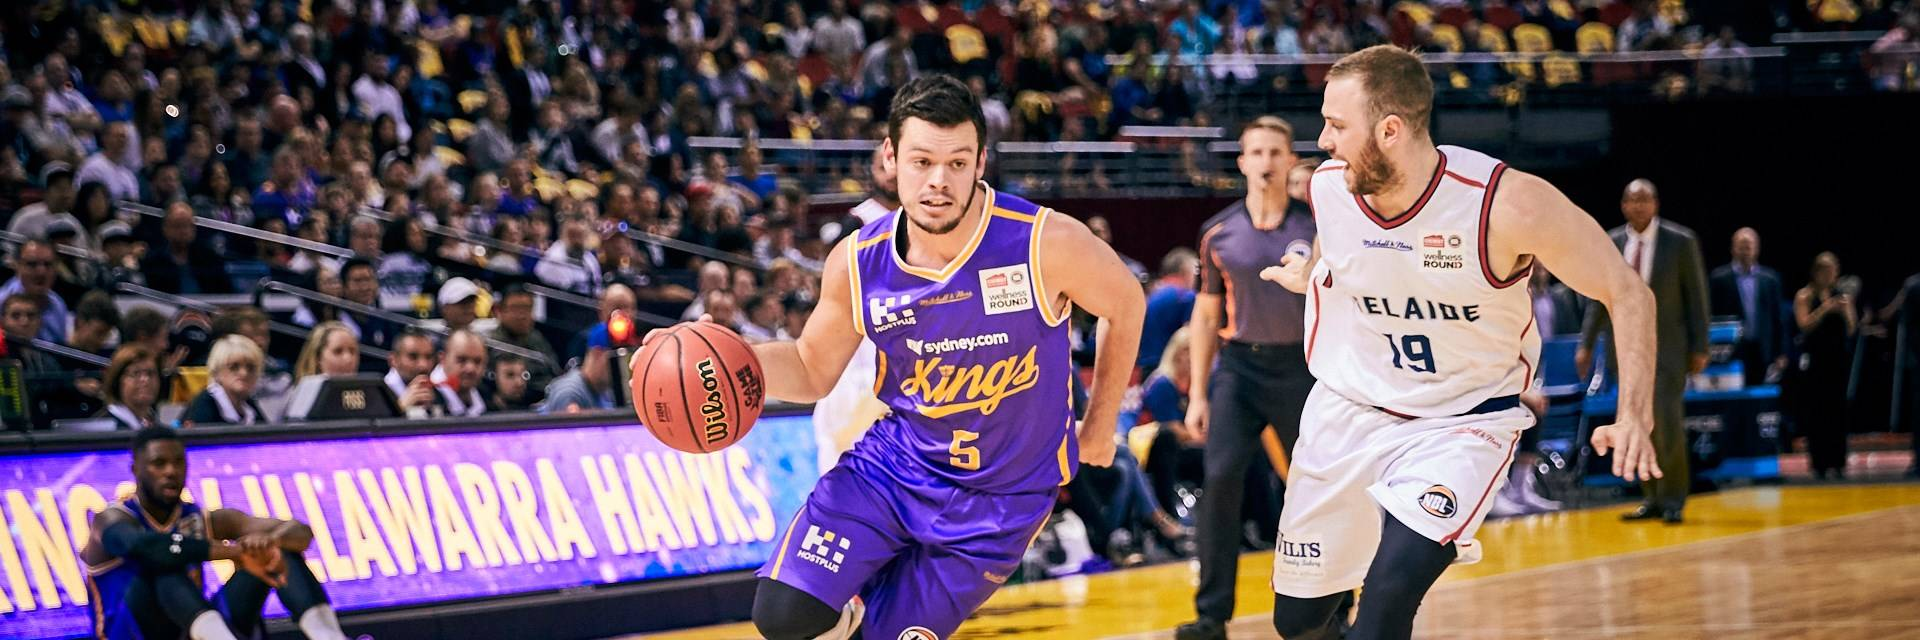 Sydney Kings basketball player facing opponent at Qudos Bank Arena